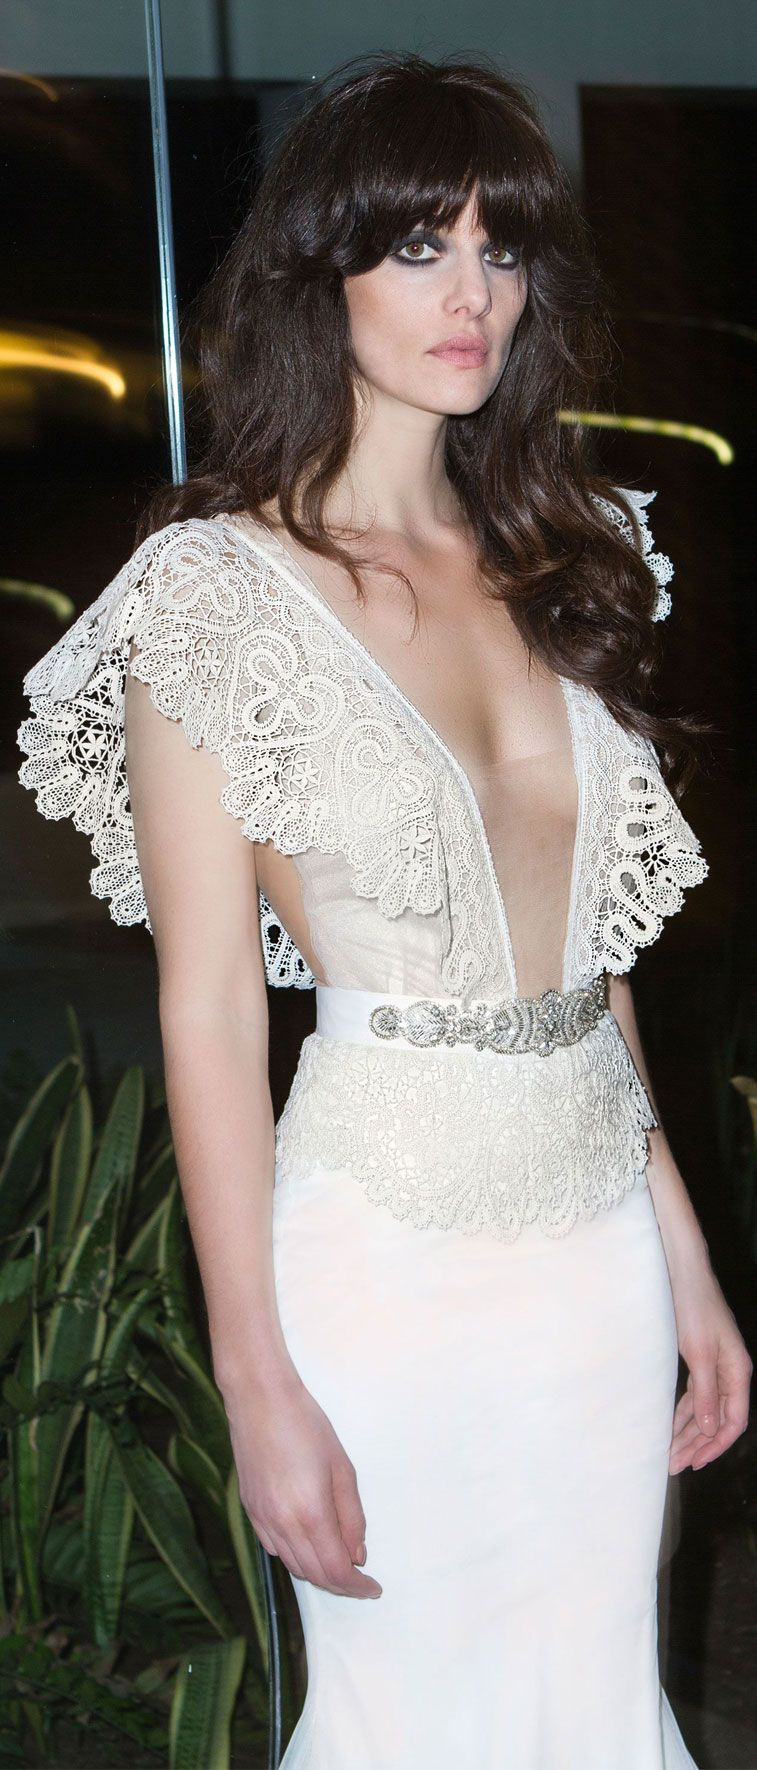 two piece wedding gown in Ivory color. special bobbin lace bodysuit, large shoulders details. mermaid cut tulle skirt. Fit and flare  wedding dress #weddingdress #weddinggown